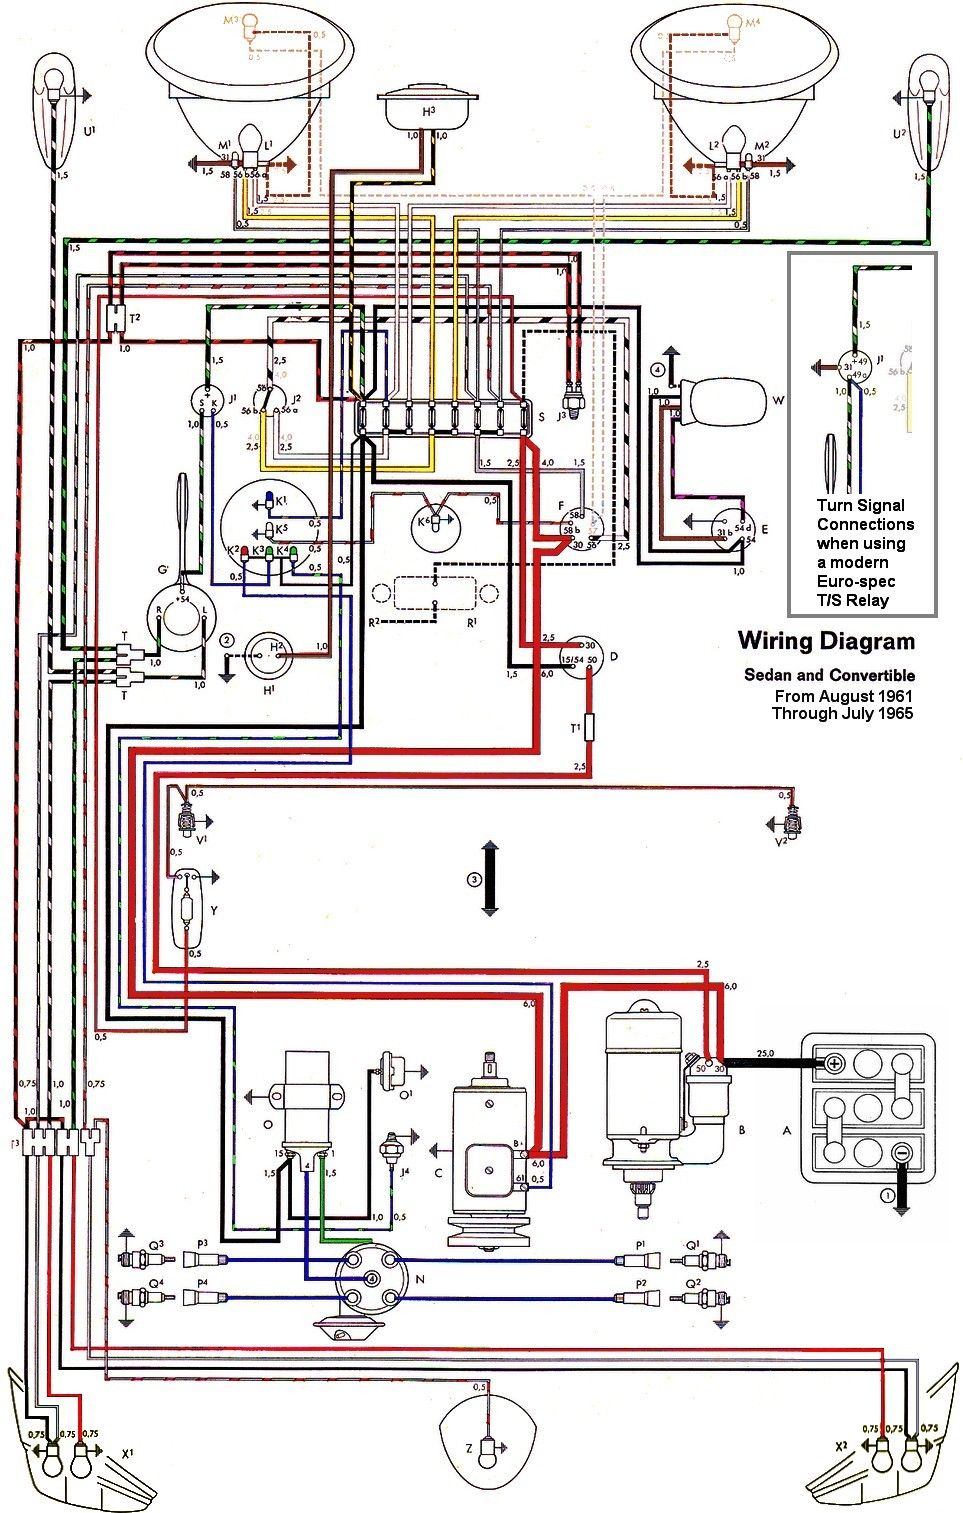 2235472c26e9b61112a110100d6ddea3 wiring diagram in color 1964 vw bug, beetle, convertible the 1973 vw super beetle wiring harness at creativeand.co